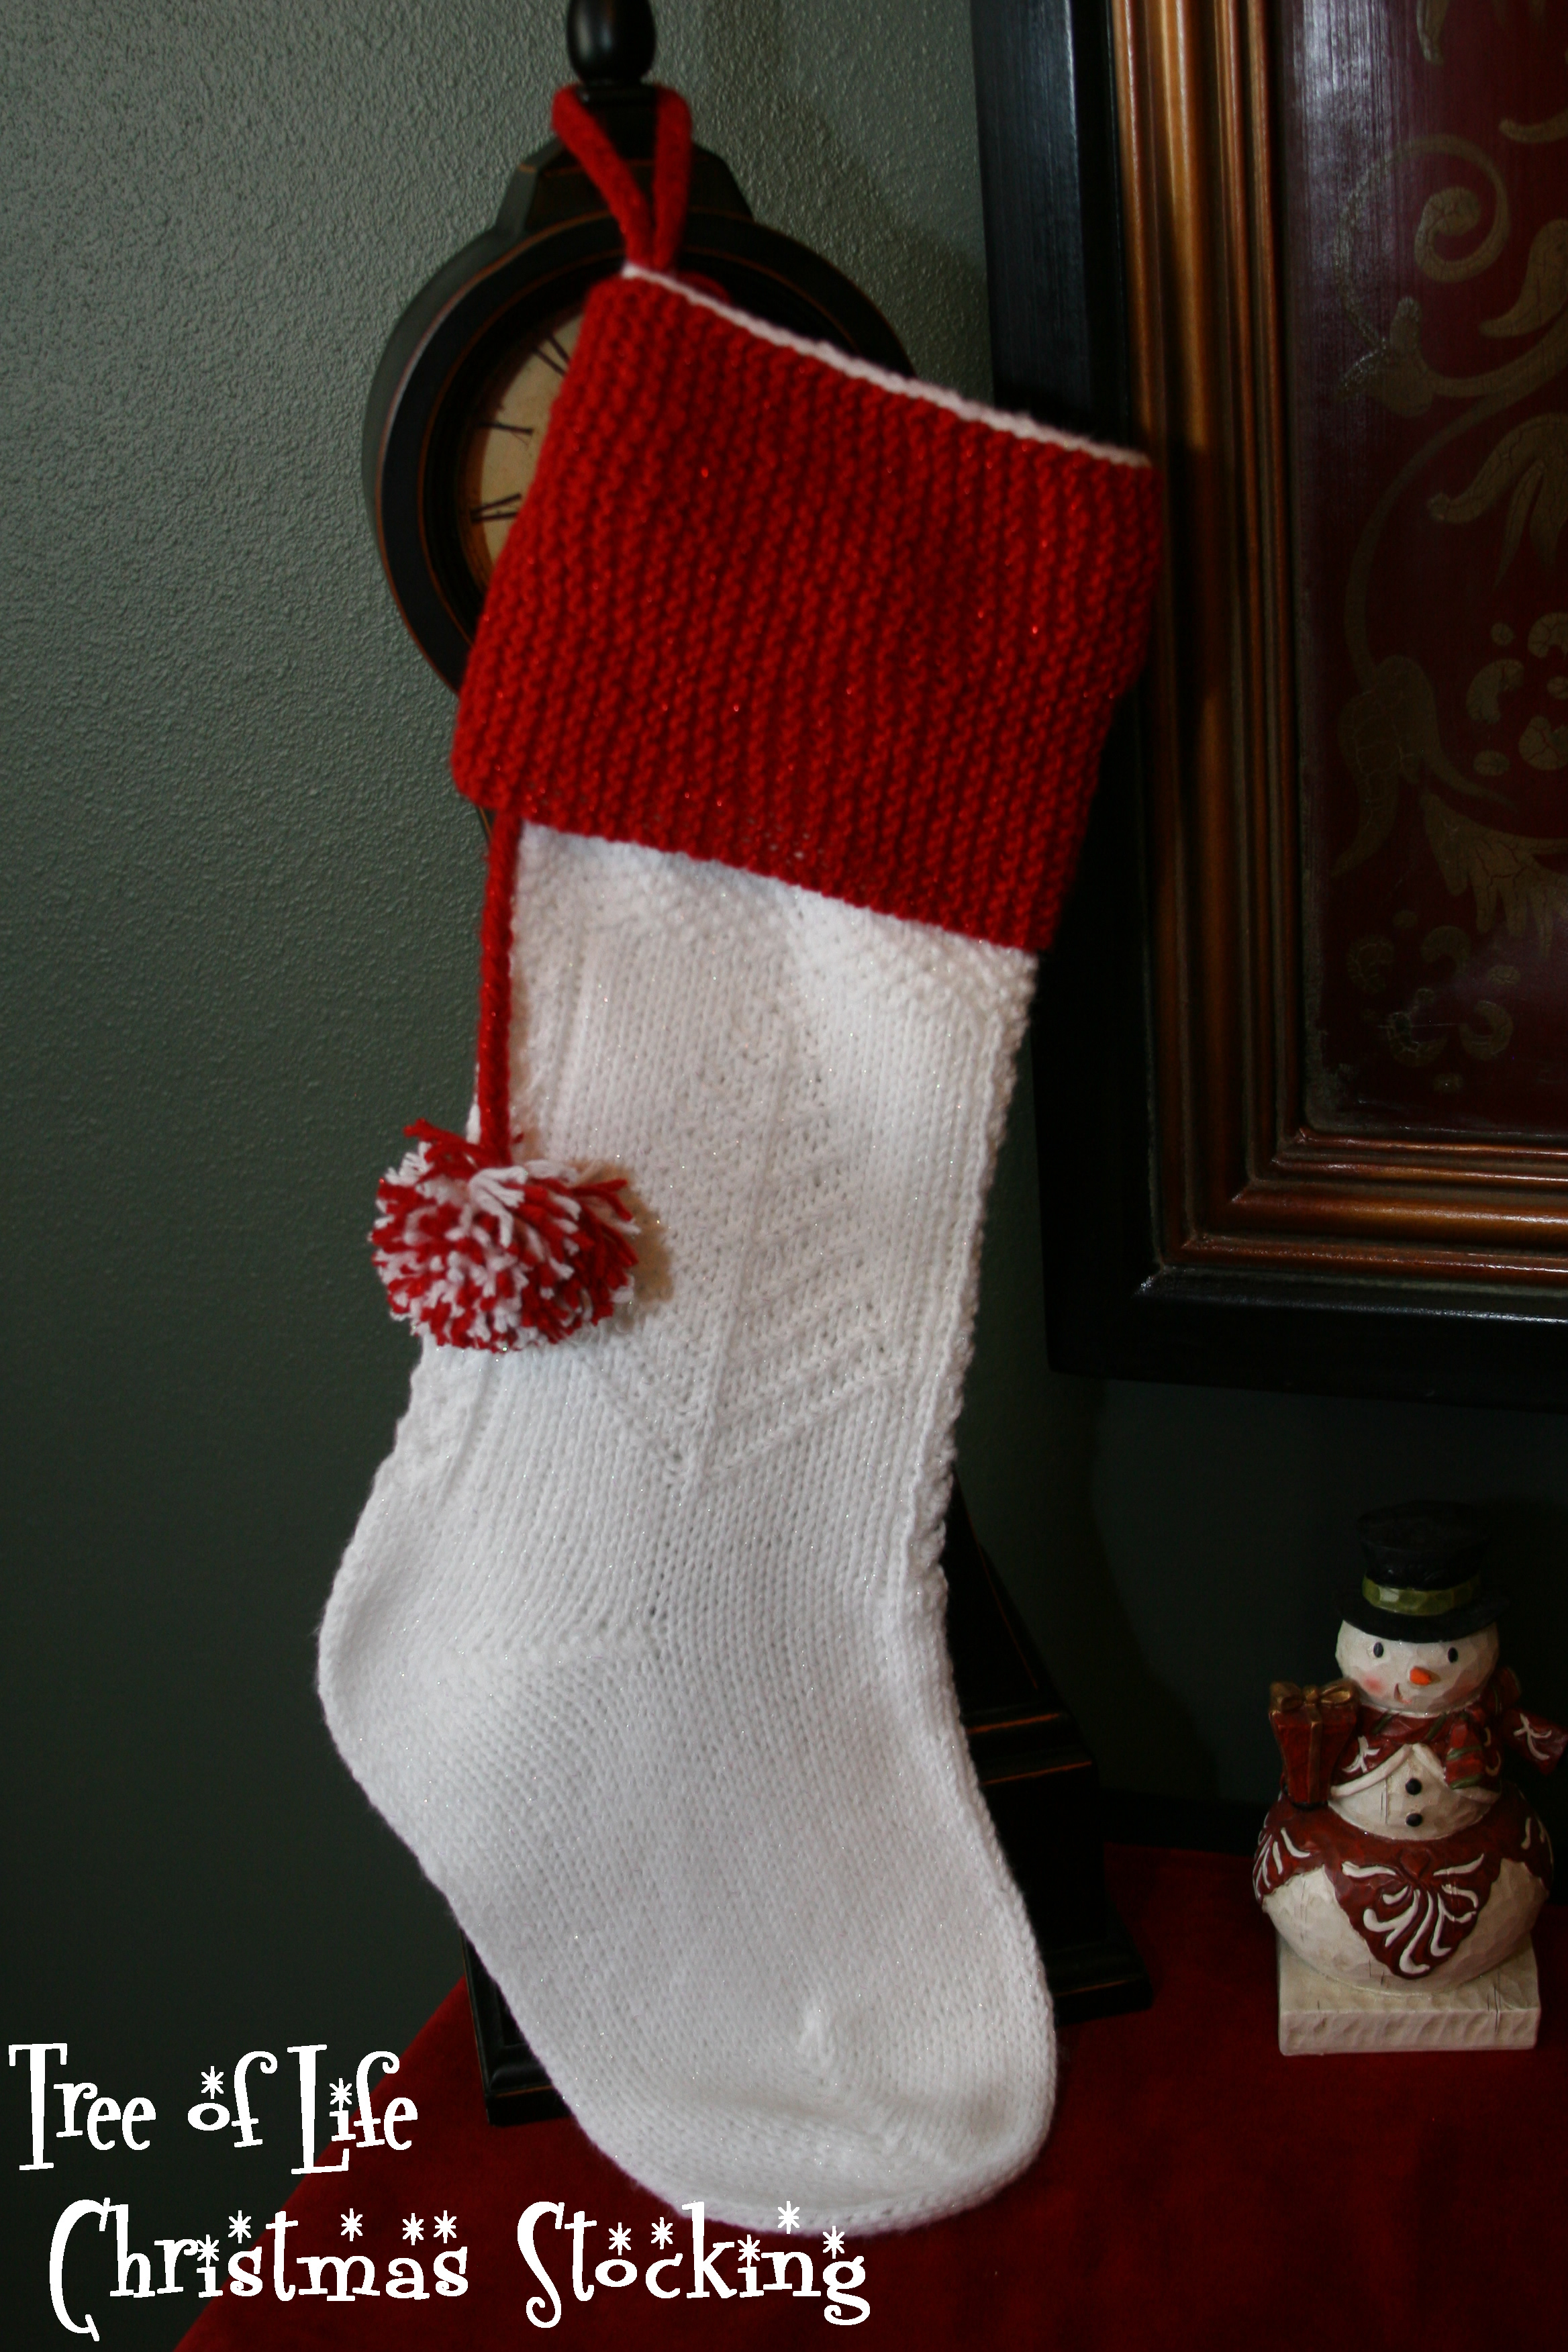 Creative knit christmas stockings with multicolorful christmas stocking and fireplace at chistmas day interior design